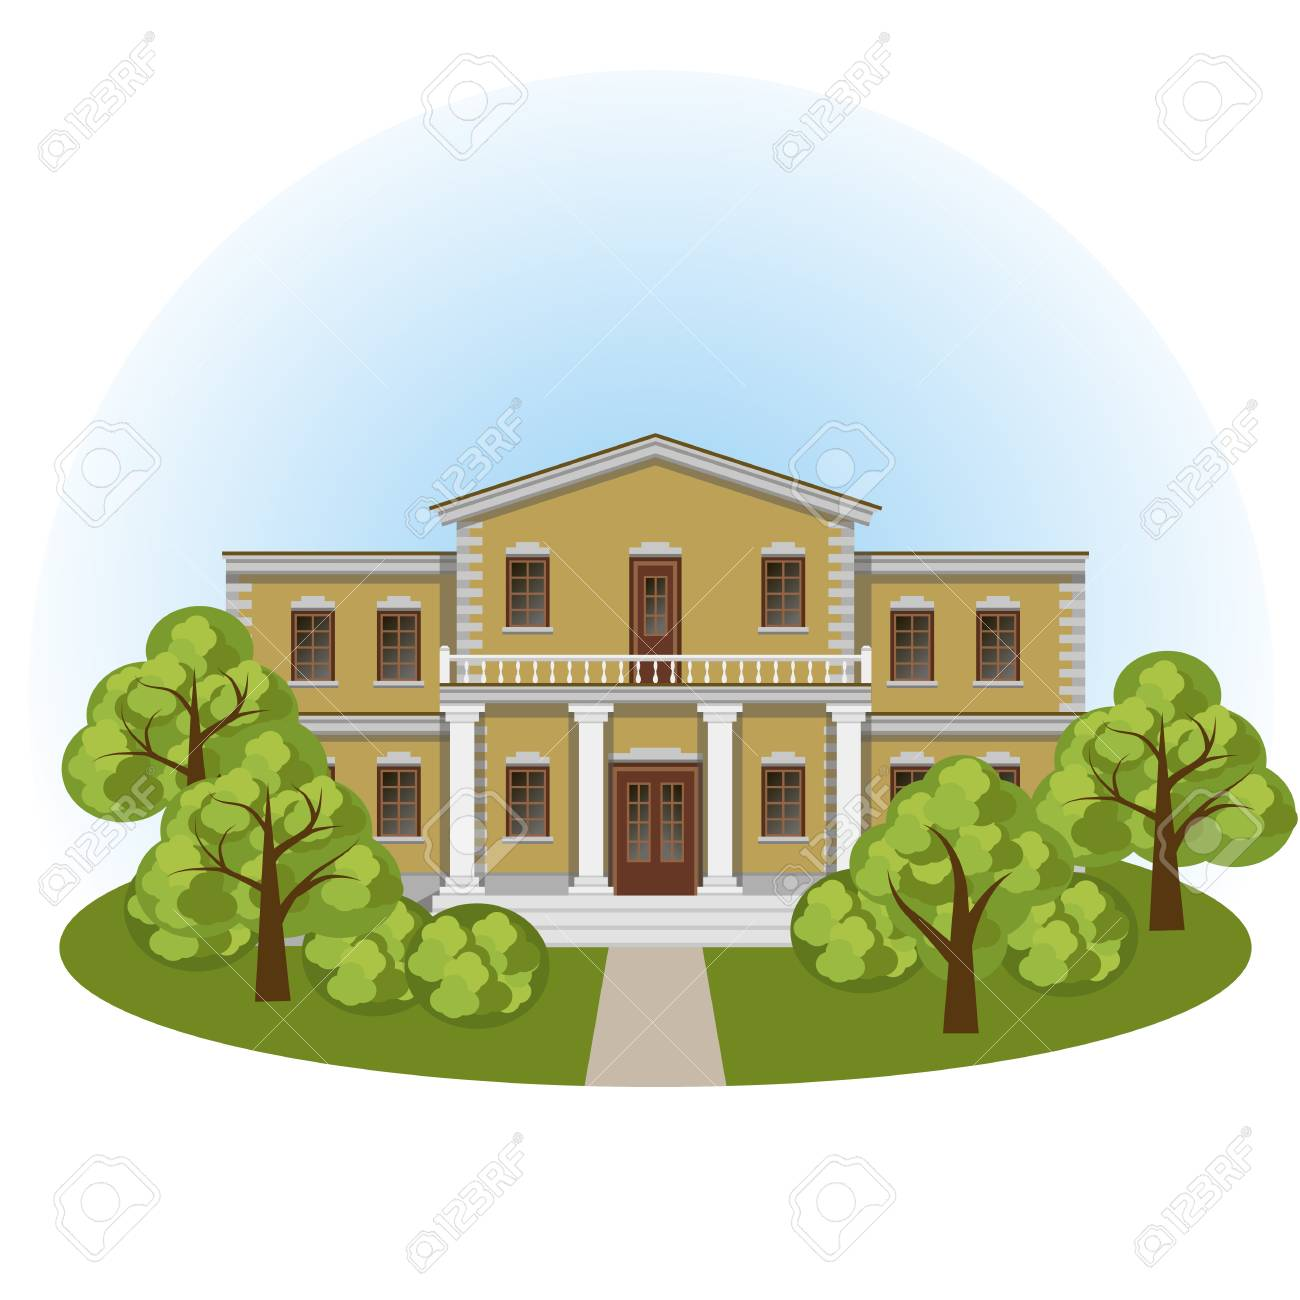 Manor House In Spring Landscape Front View Colorful Cartoon Scene With Mansion And Green